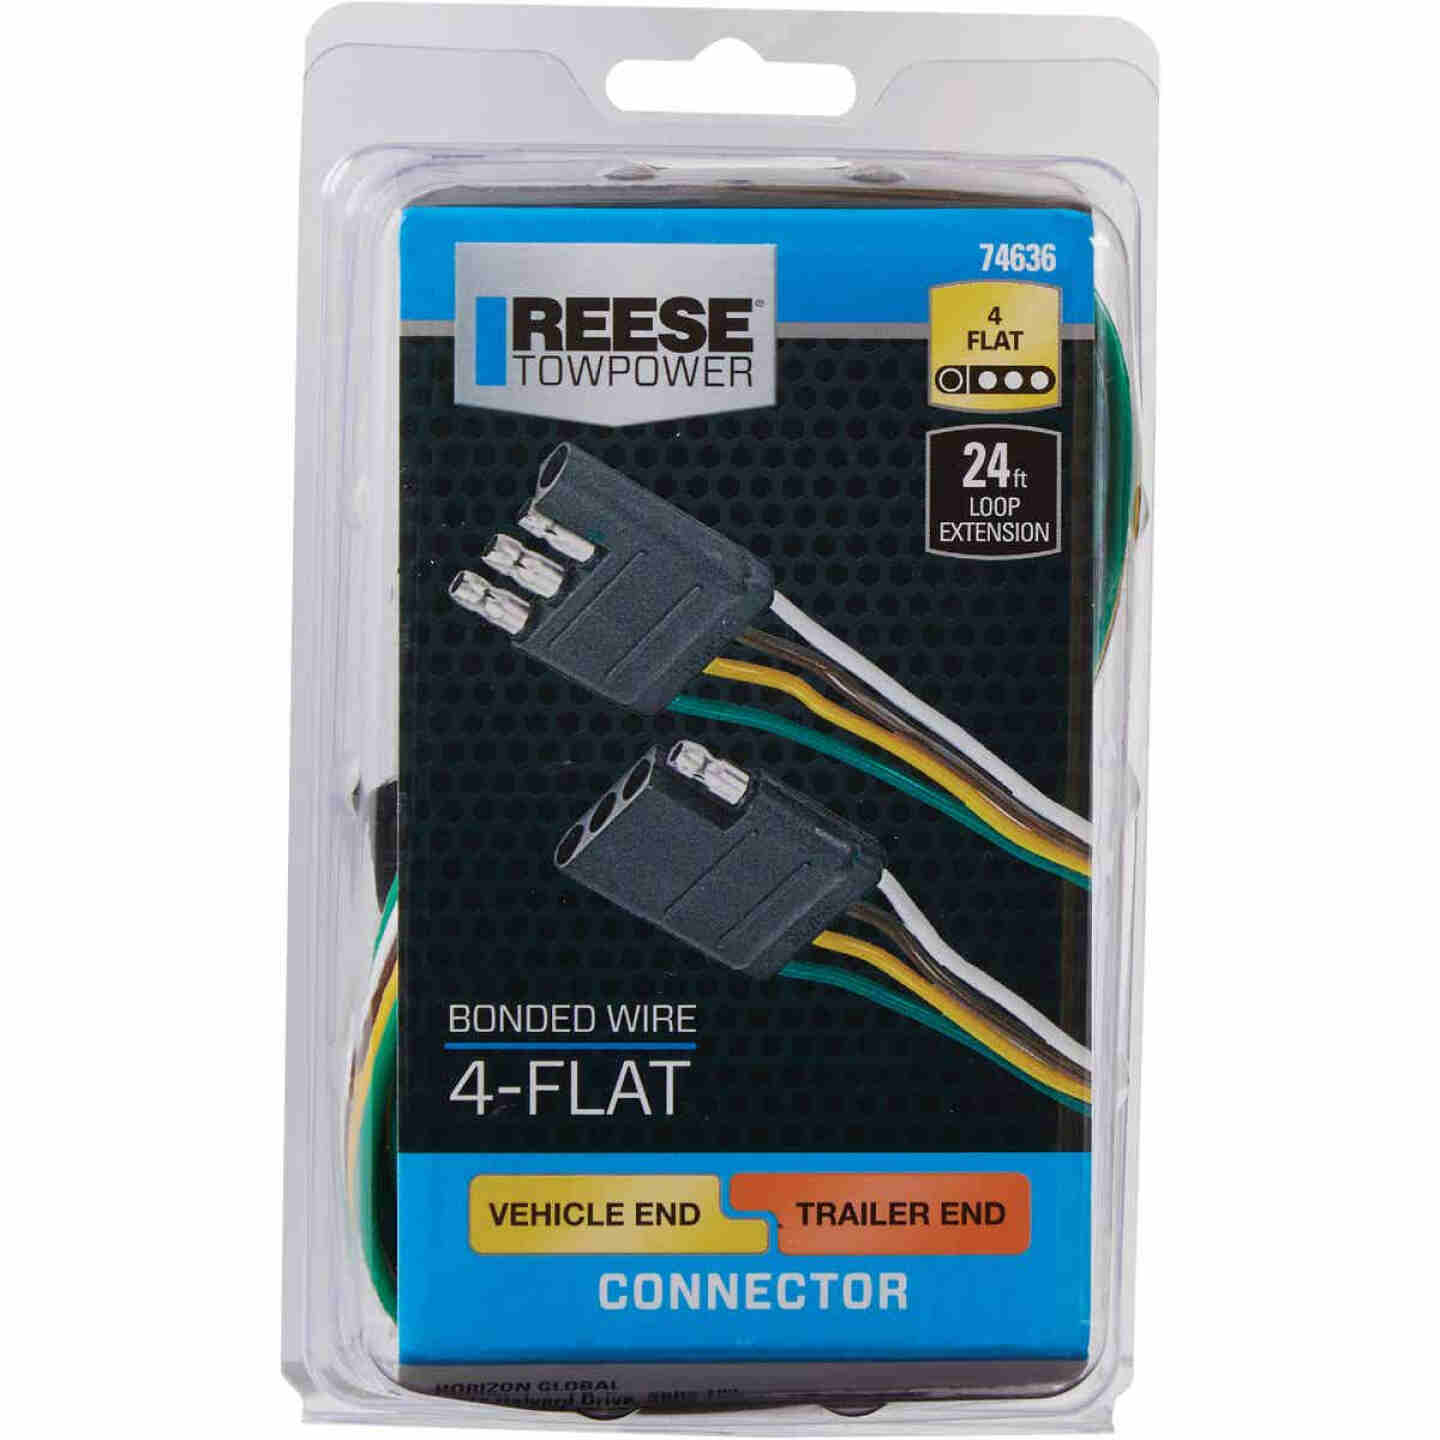 Reese Towpower 24 Ft. 4-Flat Loop Vehicle/Trailer Connector Set Image 2